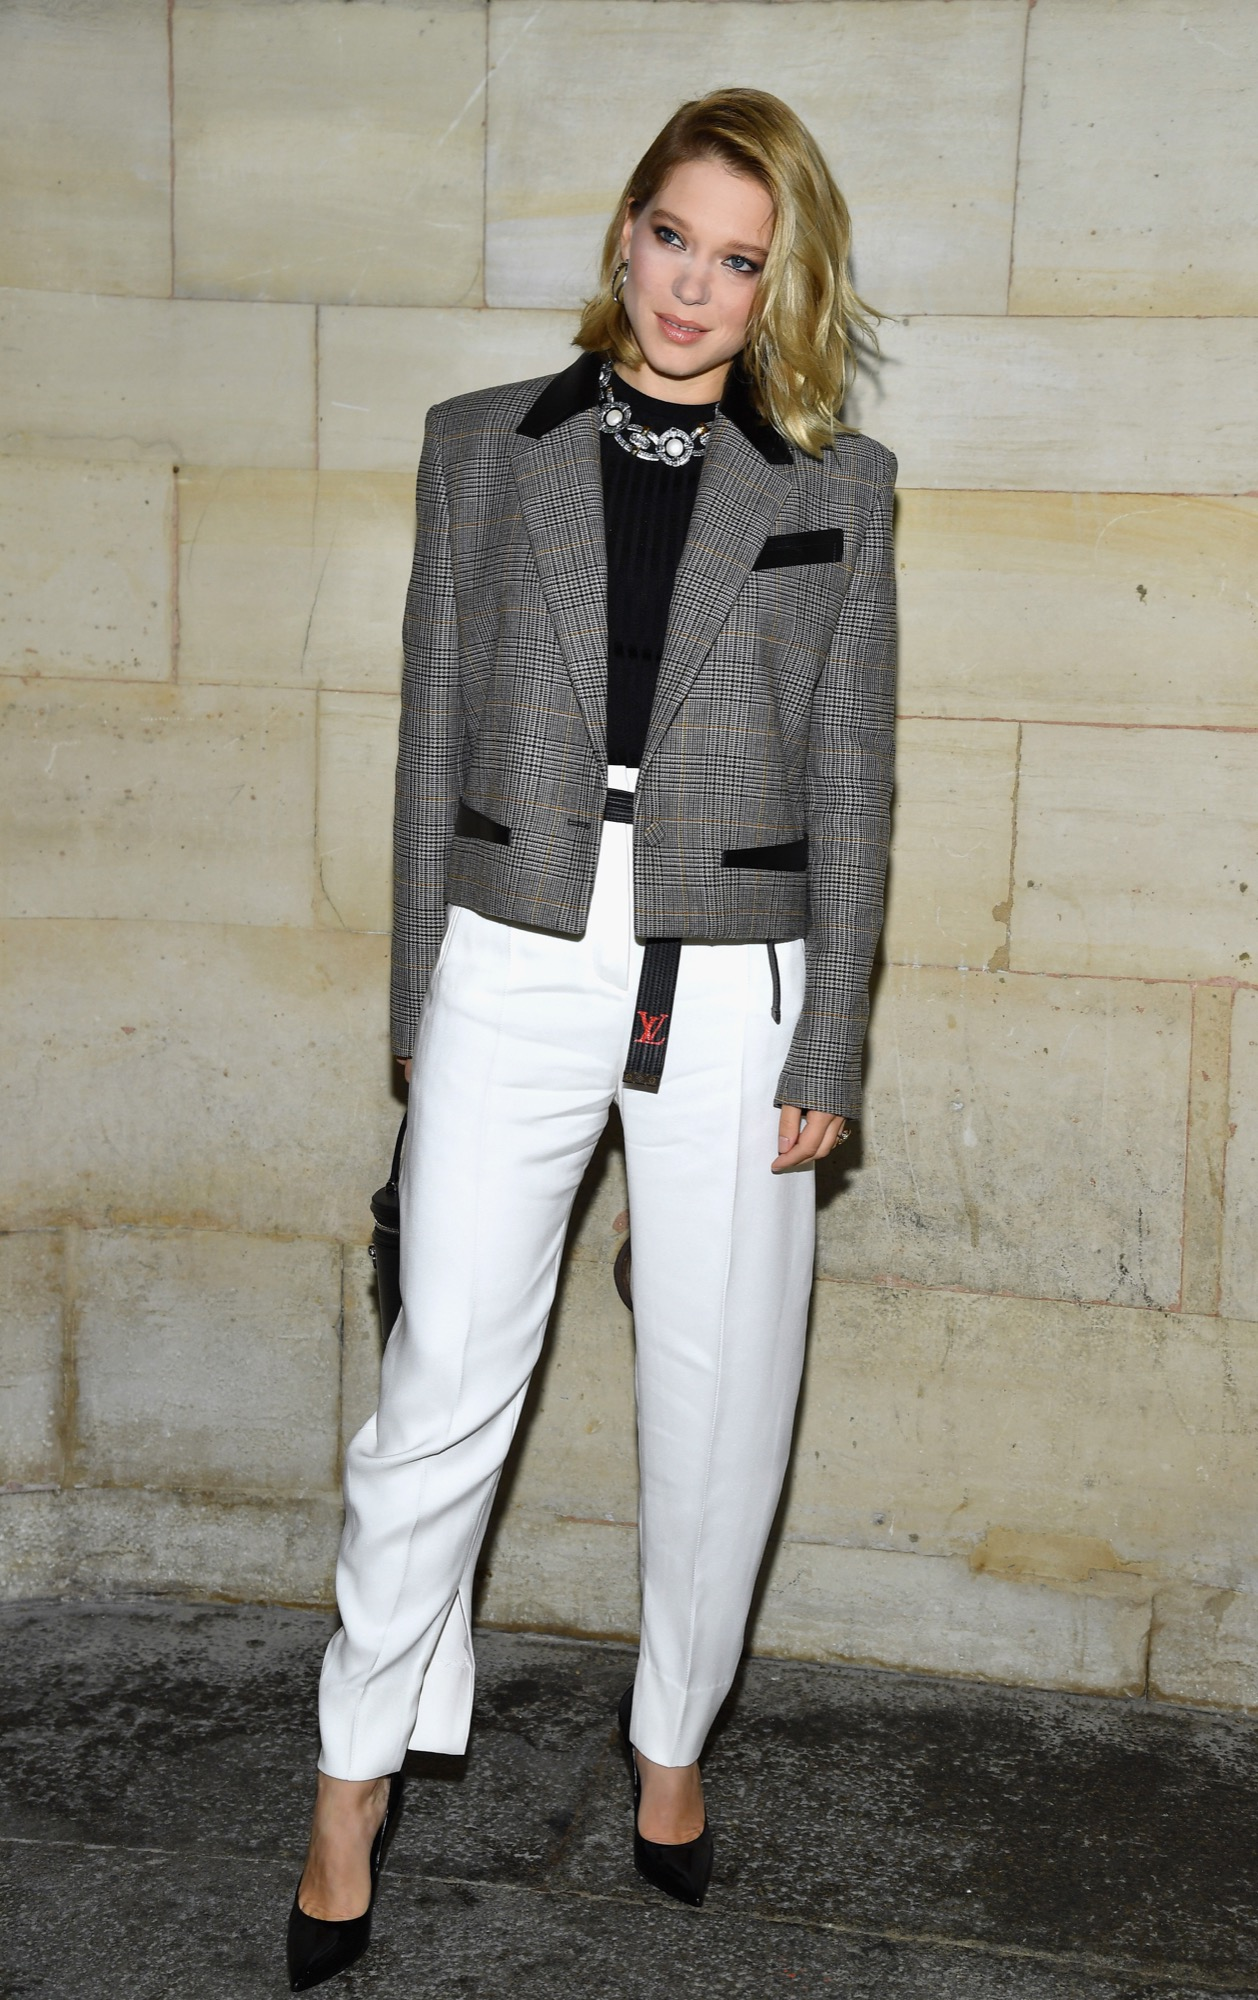 Lea Seydoux attends the Louis Vuitton show as part of the Paris Fashion Week Womenswear Spring/Summer 2019 on October 2, 2018 in Paris, France.